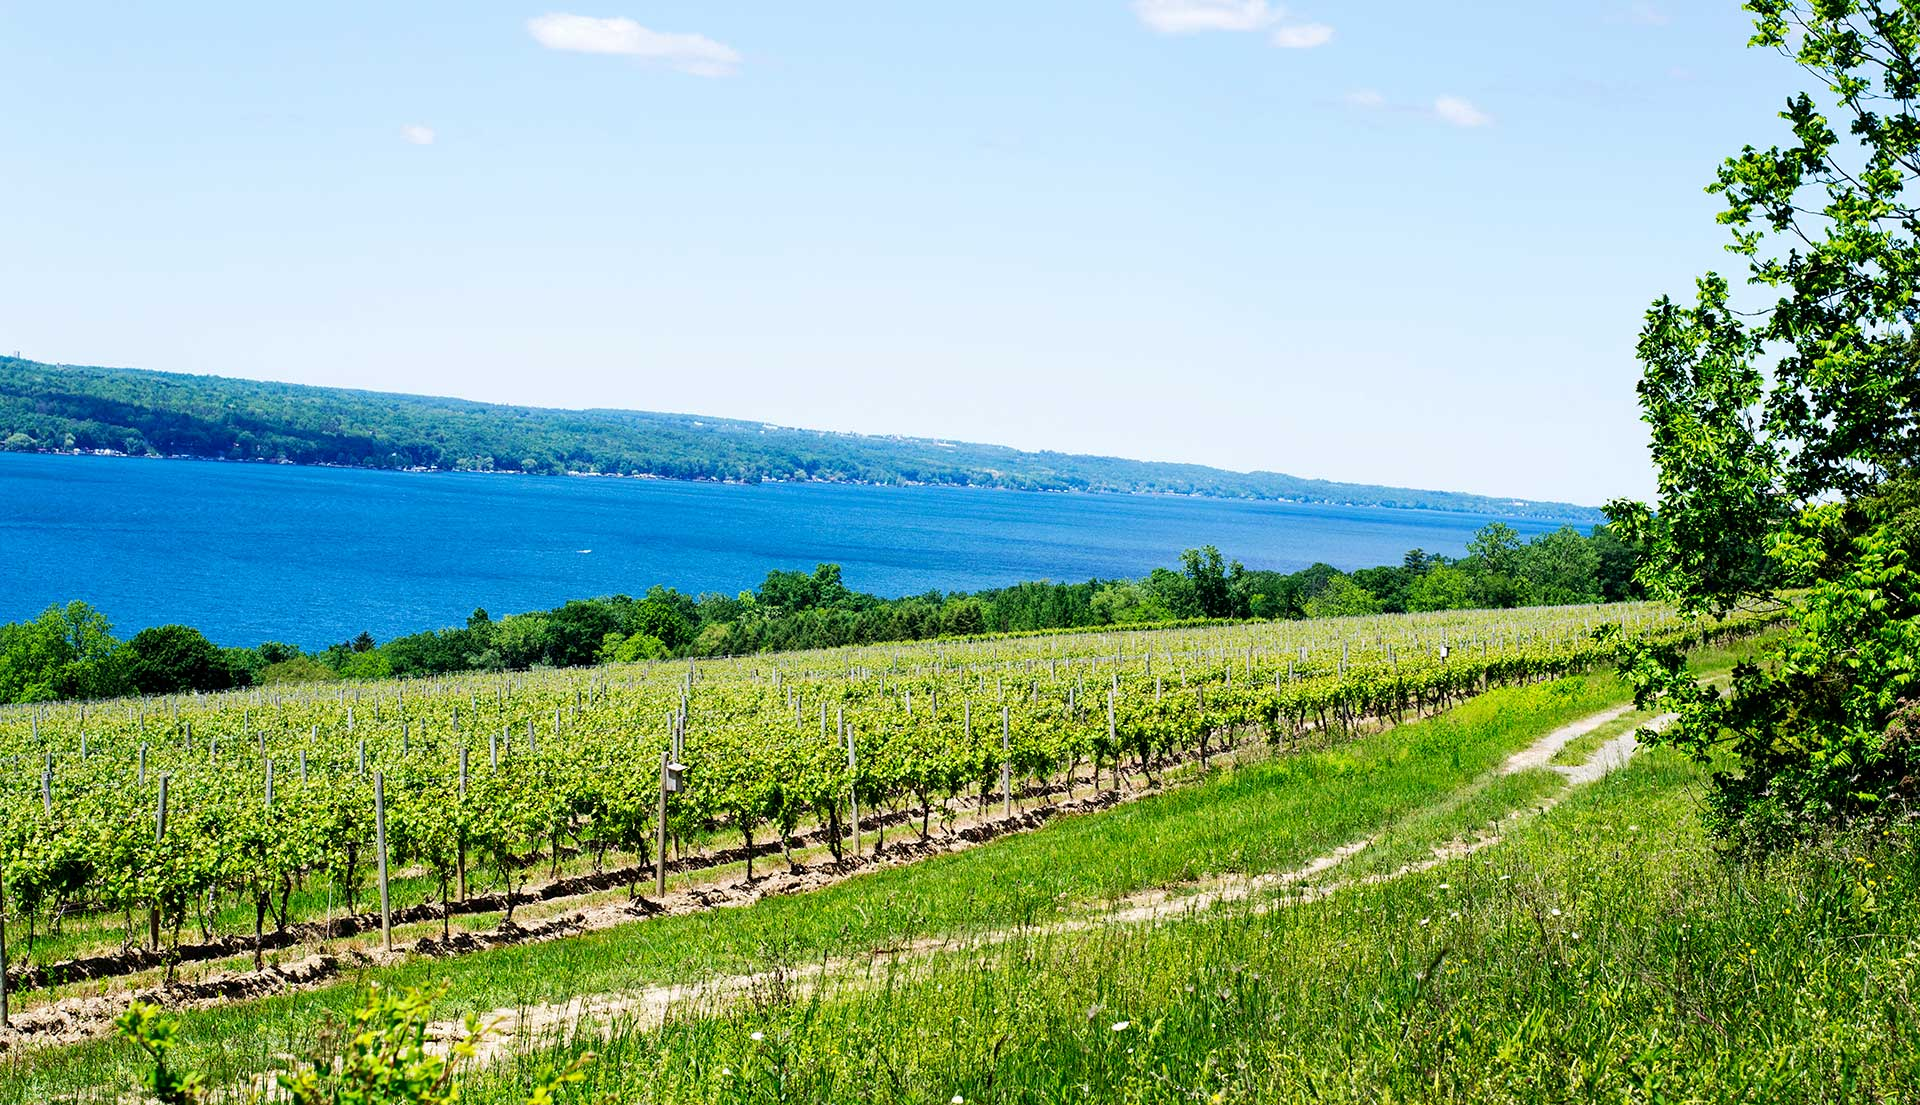 A sweeping view of the Hector Wine Company vineyards on a beautiful blue Seneca Lake